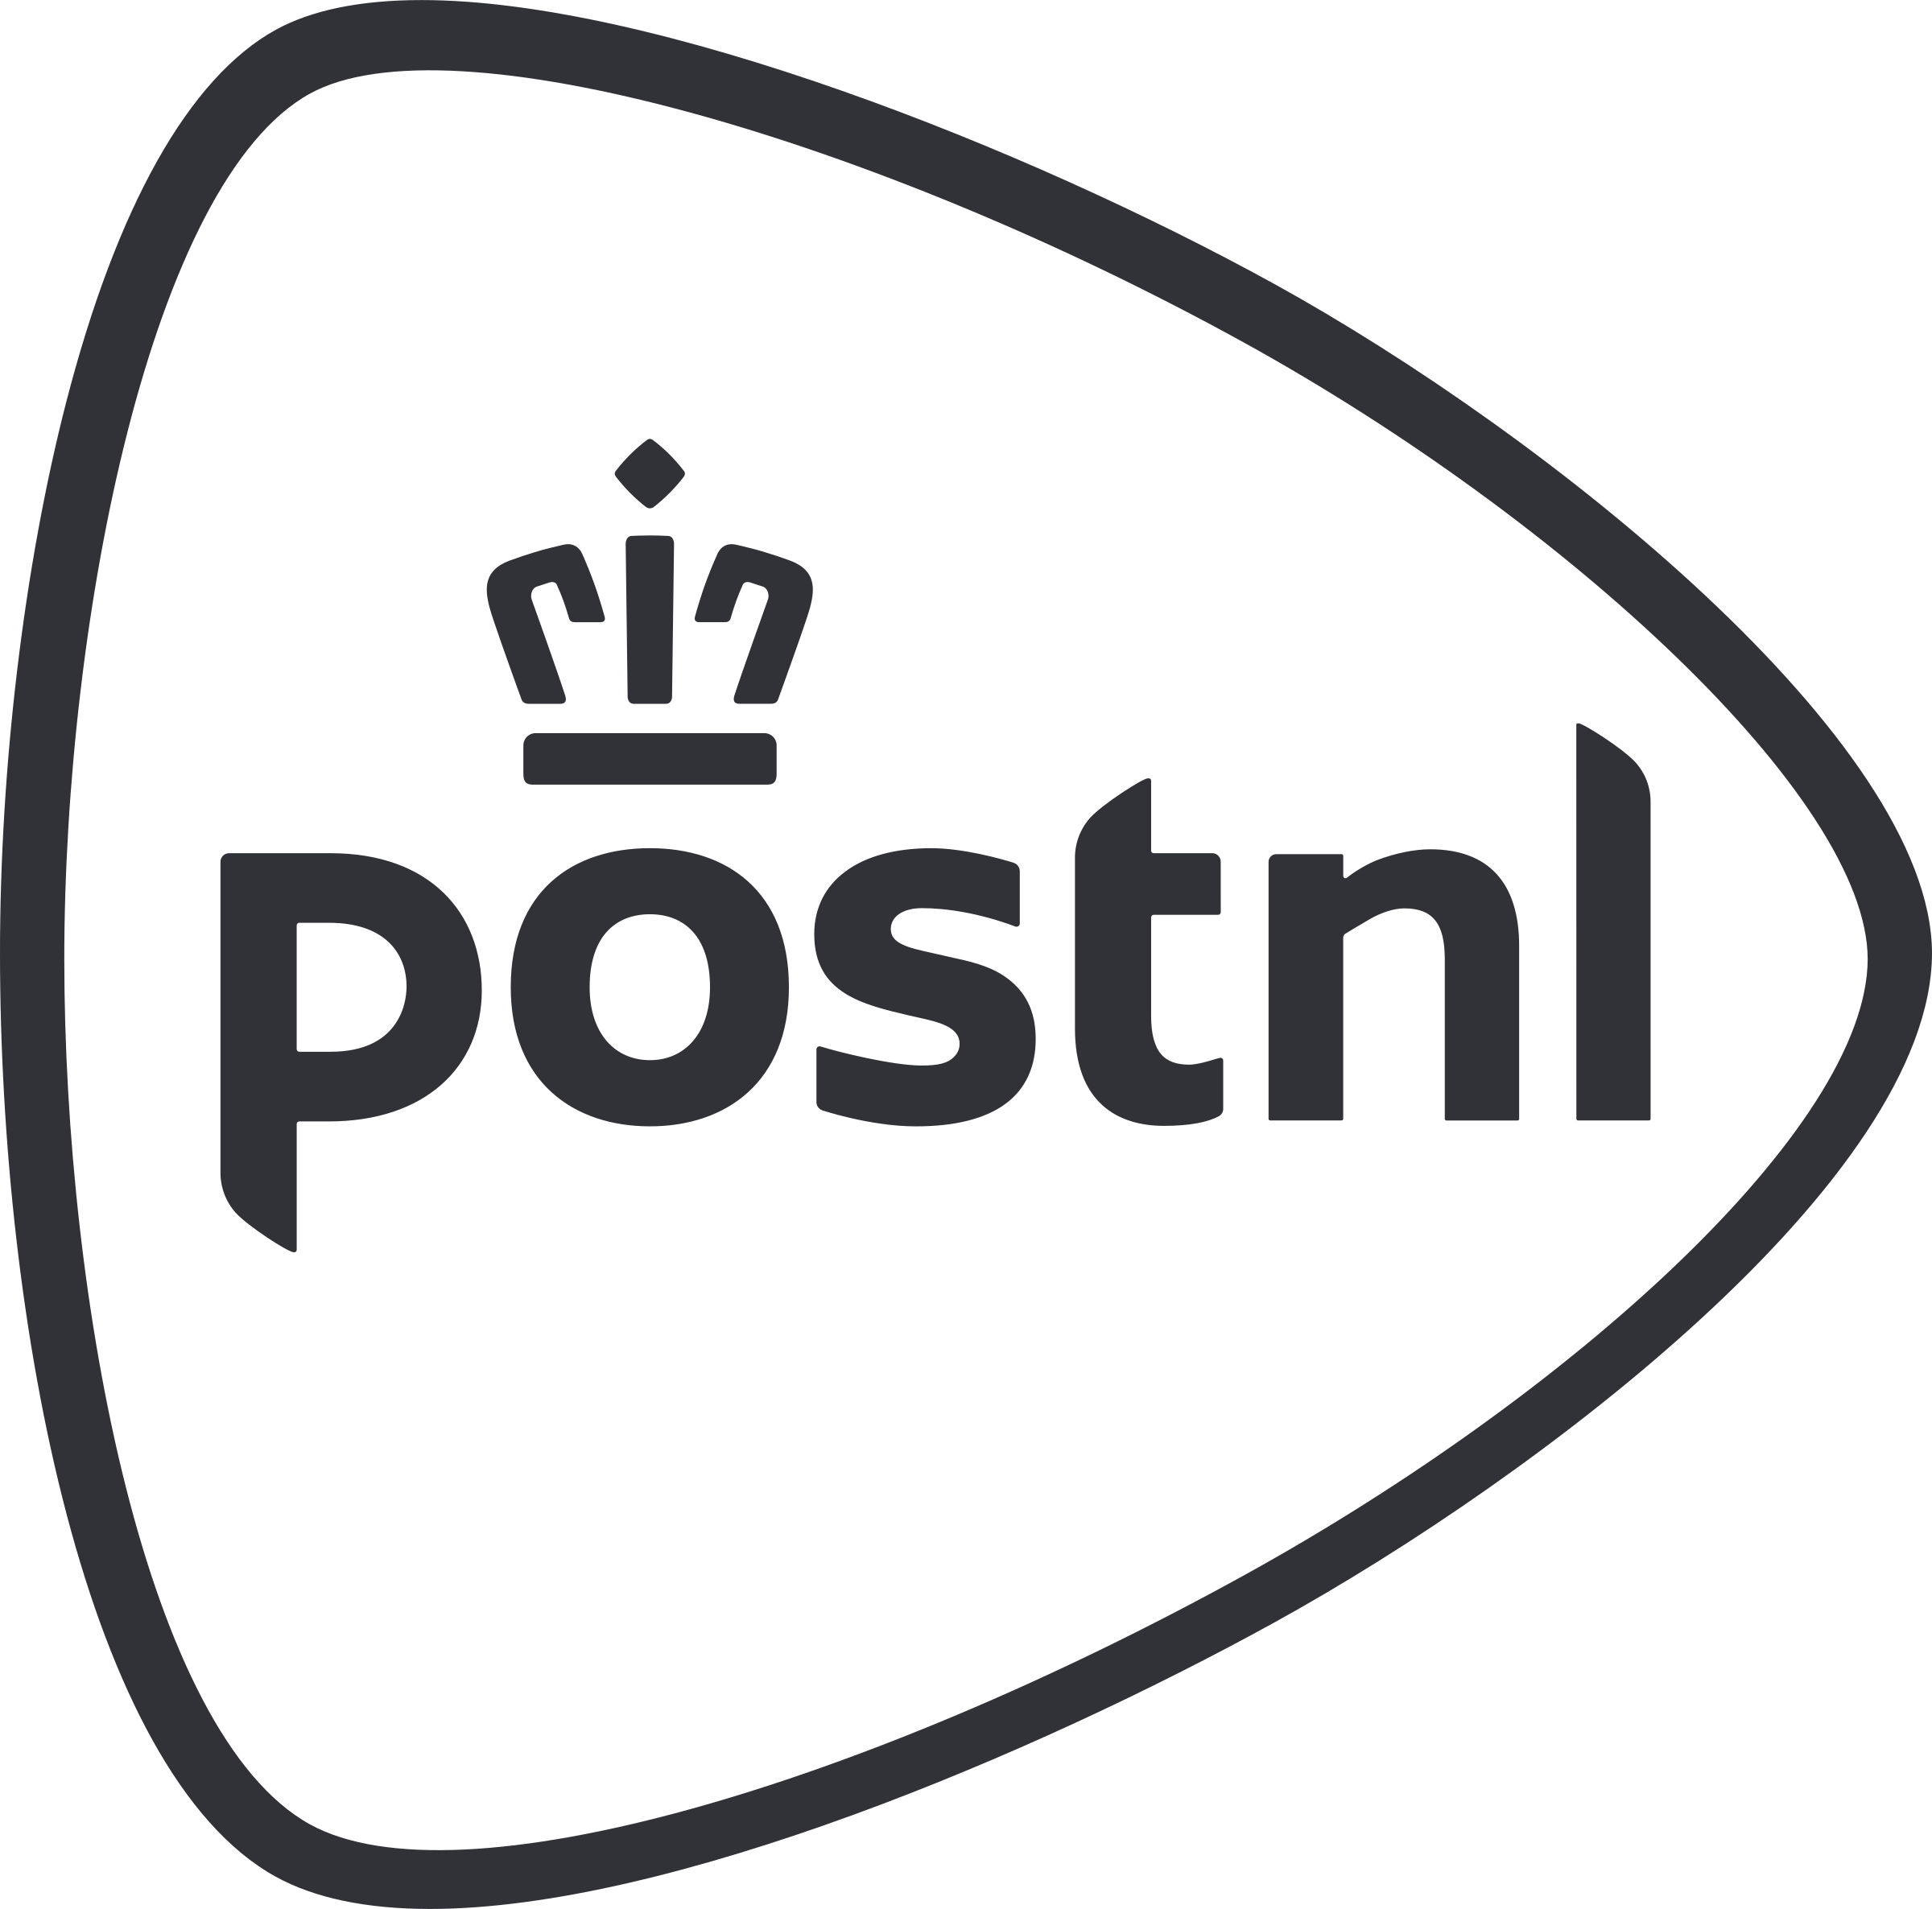 PostNL (Benelux only)